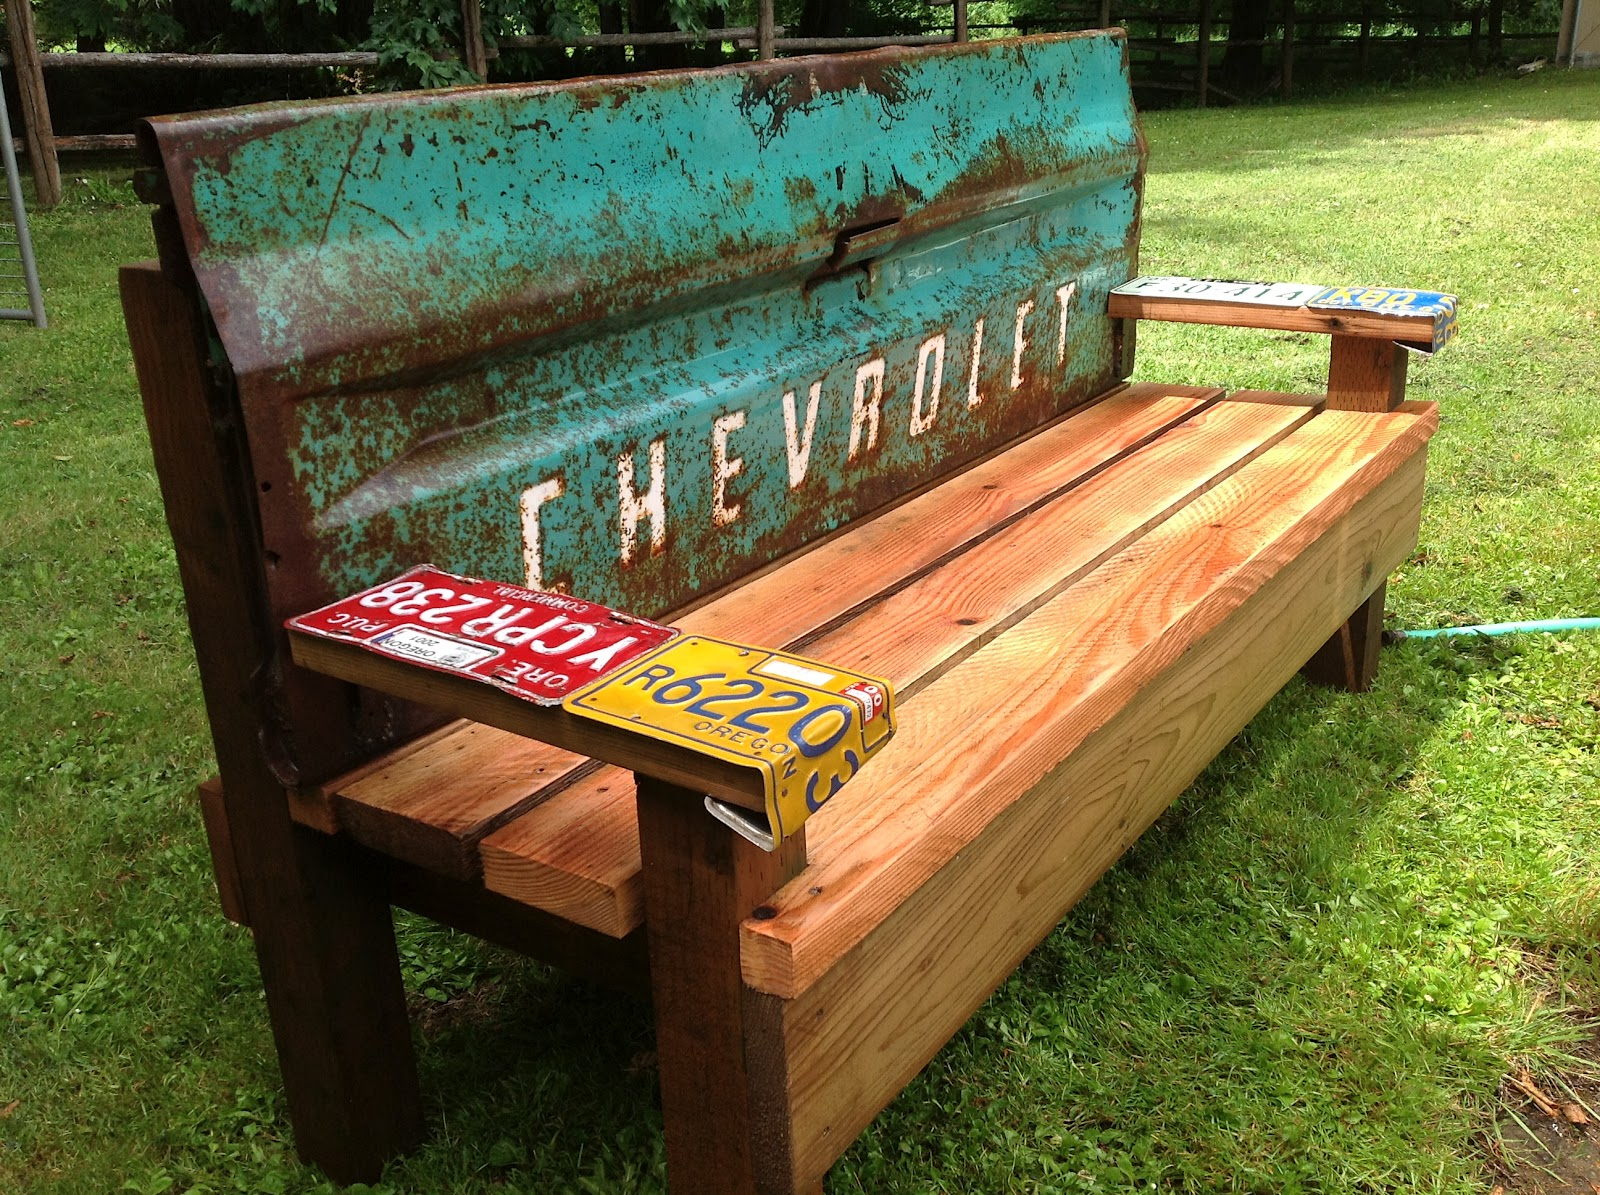 Kathi's Garden Art Rust-n-Stuff: Team building - Garden Bench with an ...